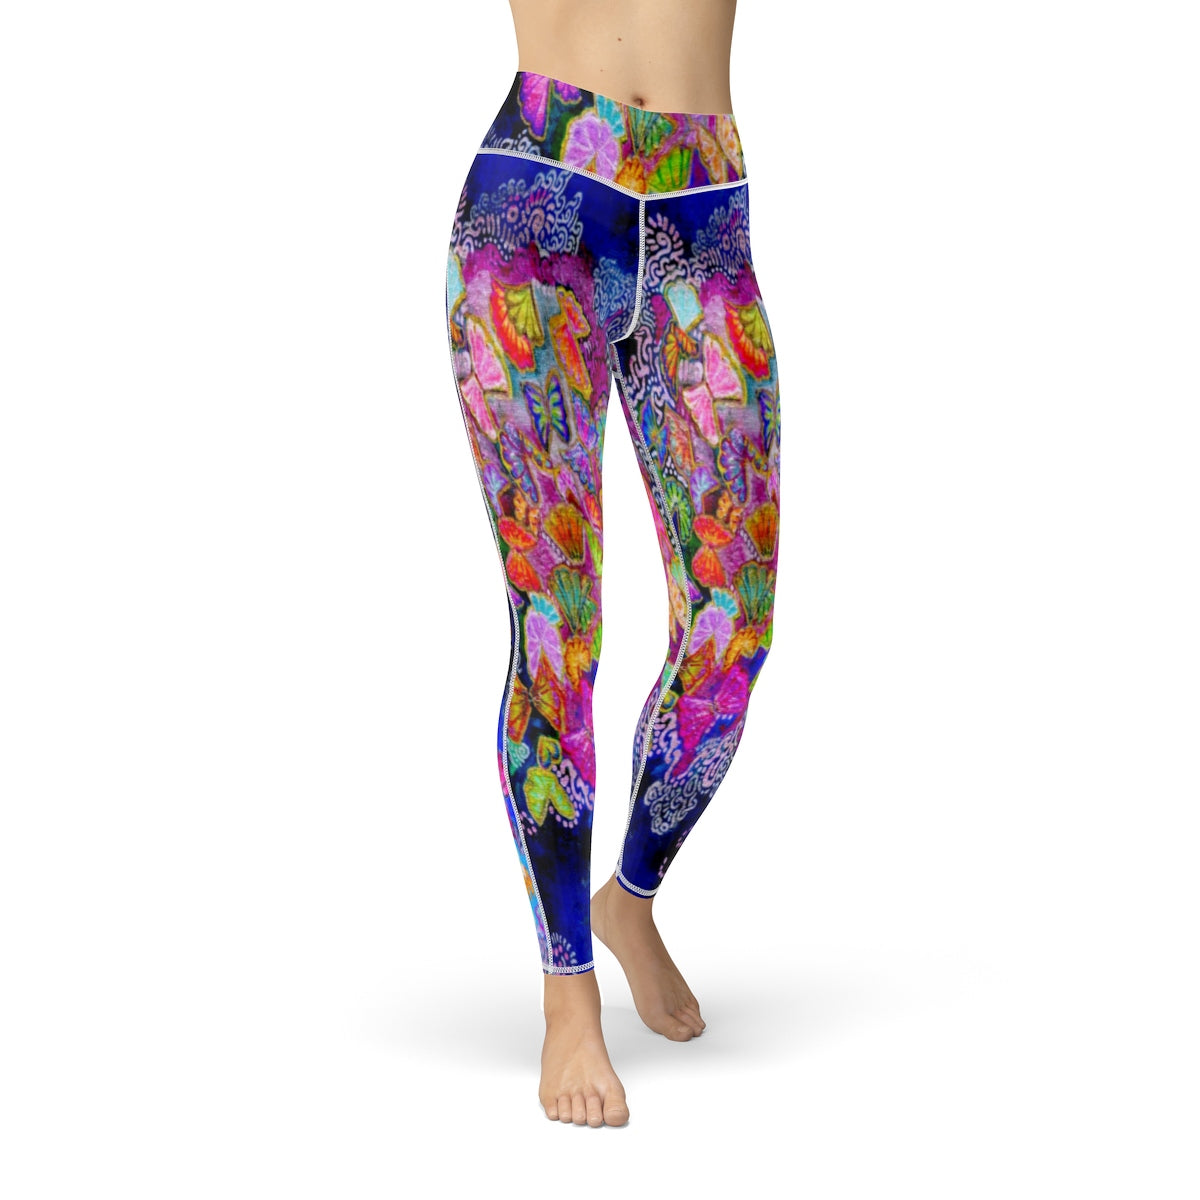 Butterfly Bloom Cut & Sew Sport Leggings